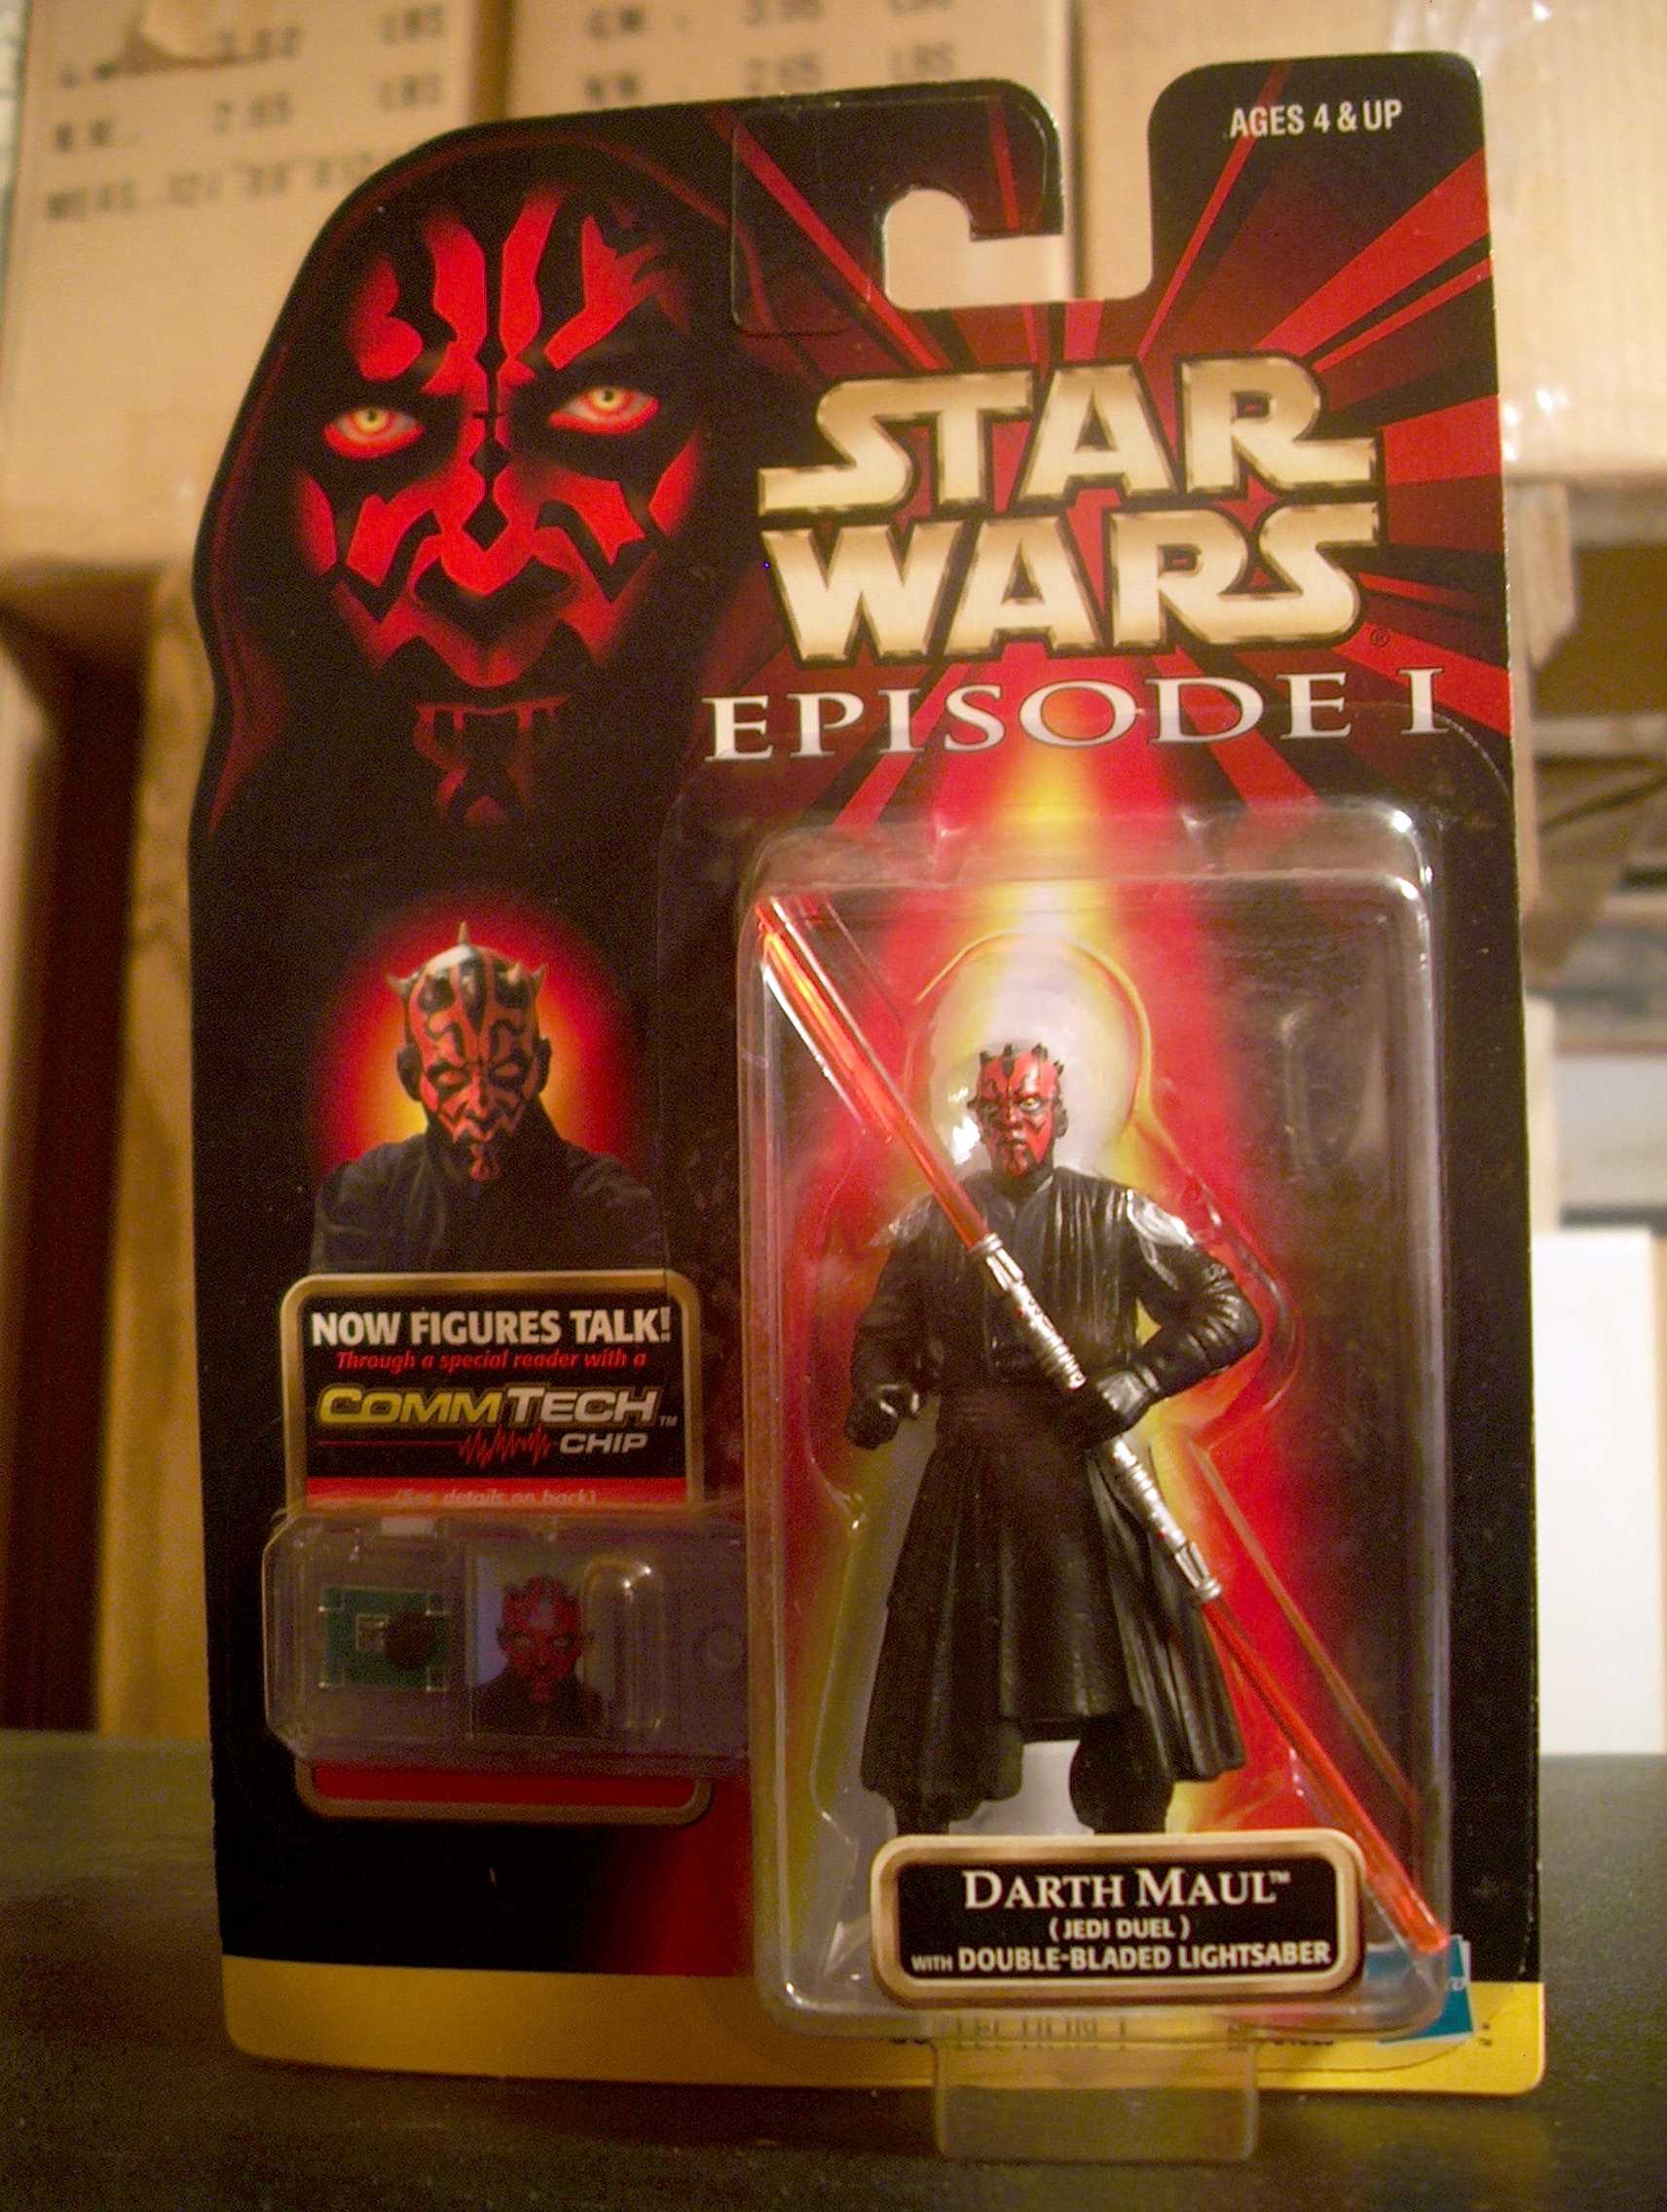 Darth Maul (Jedi Duel) with Double-Bladed Lightsaber (Gray Vest)